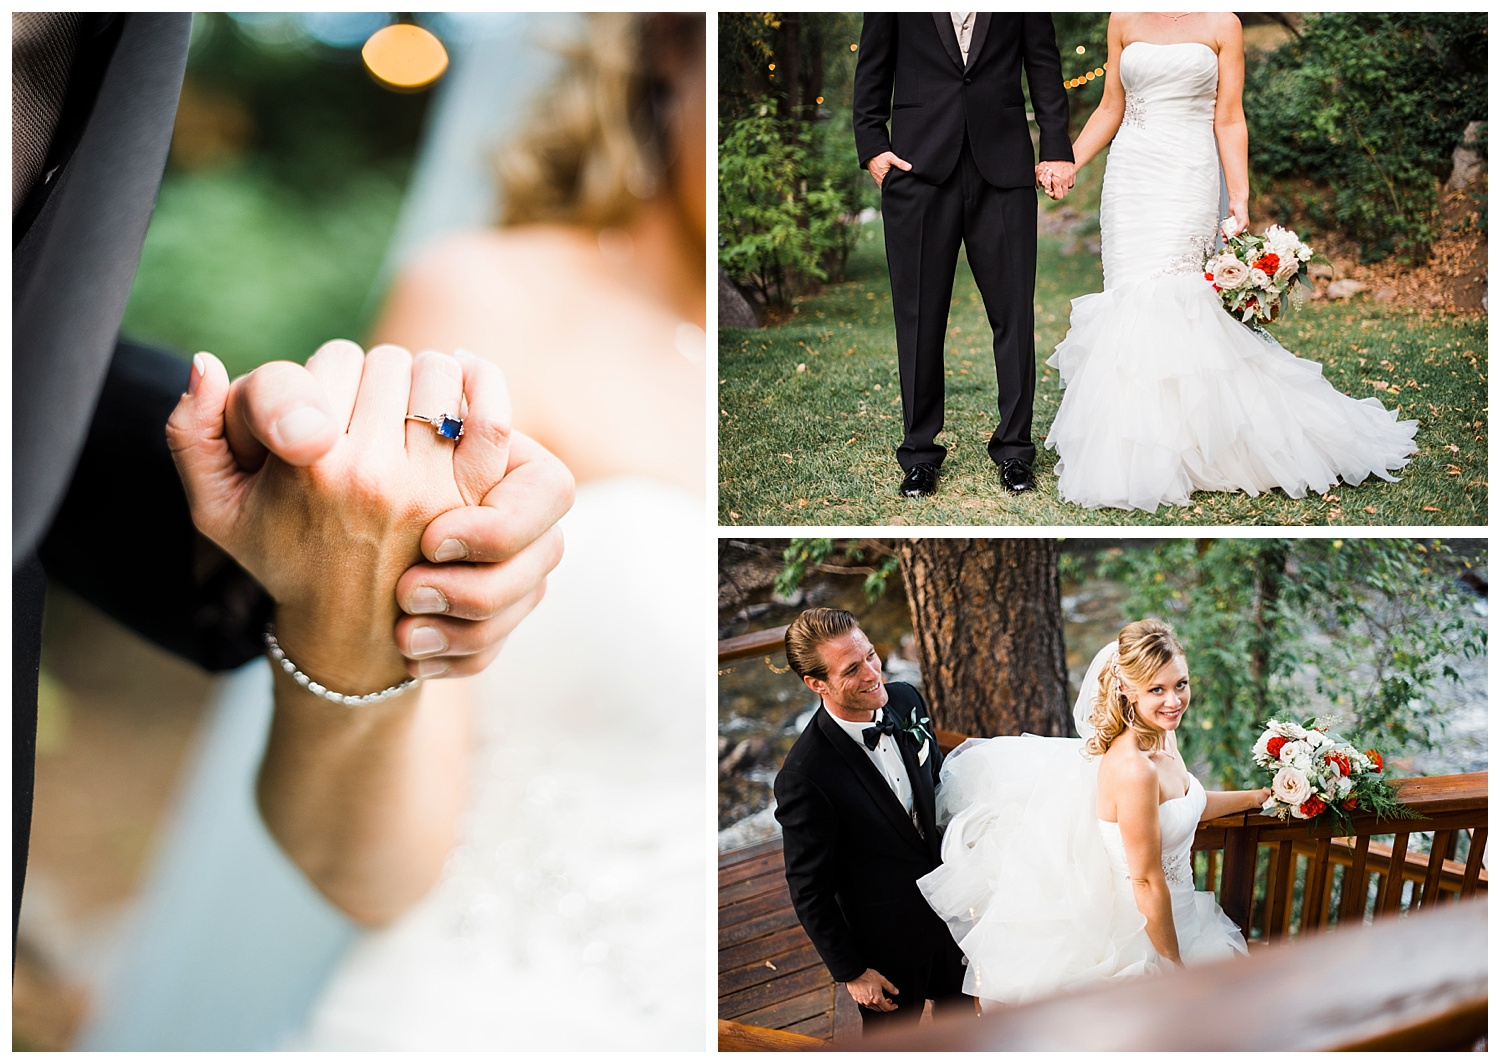 Wedgewood_Boulder_Creek_Wedding_Venue_Colorado_Photographer_Apollo_Fields_050.jpg